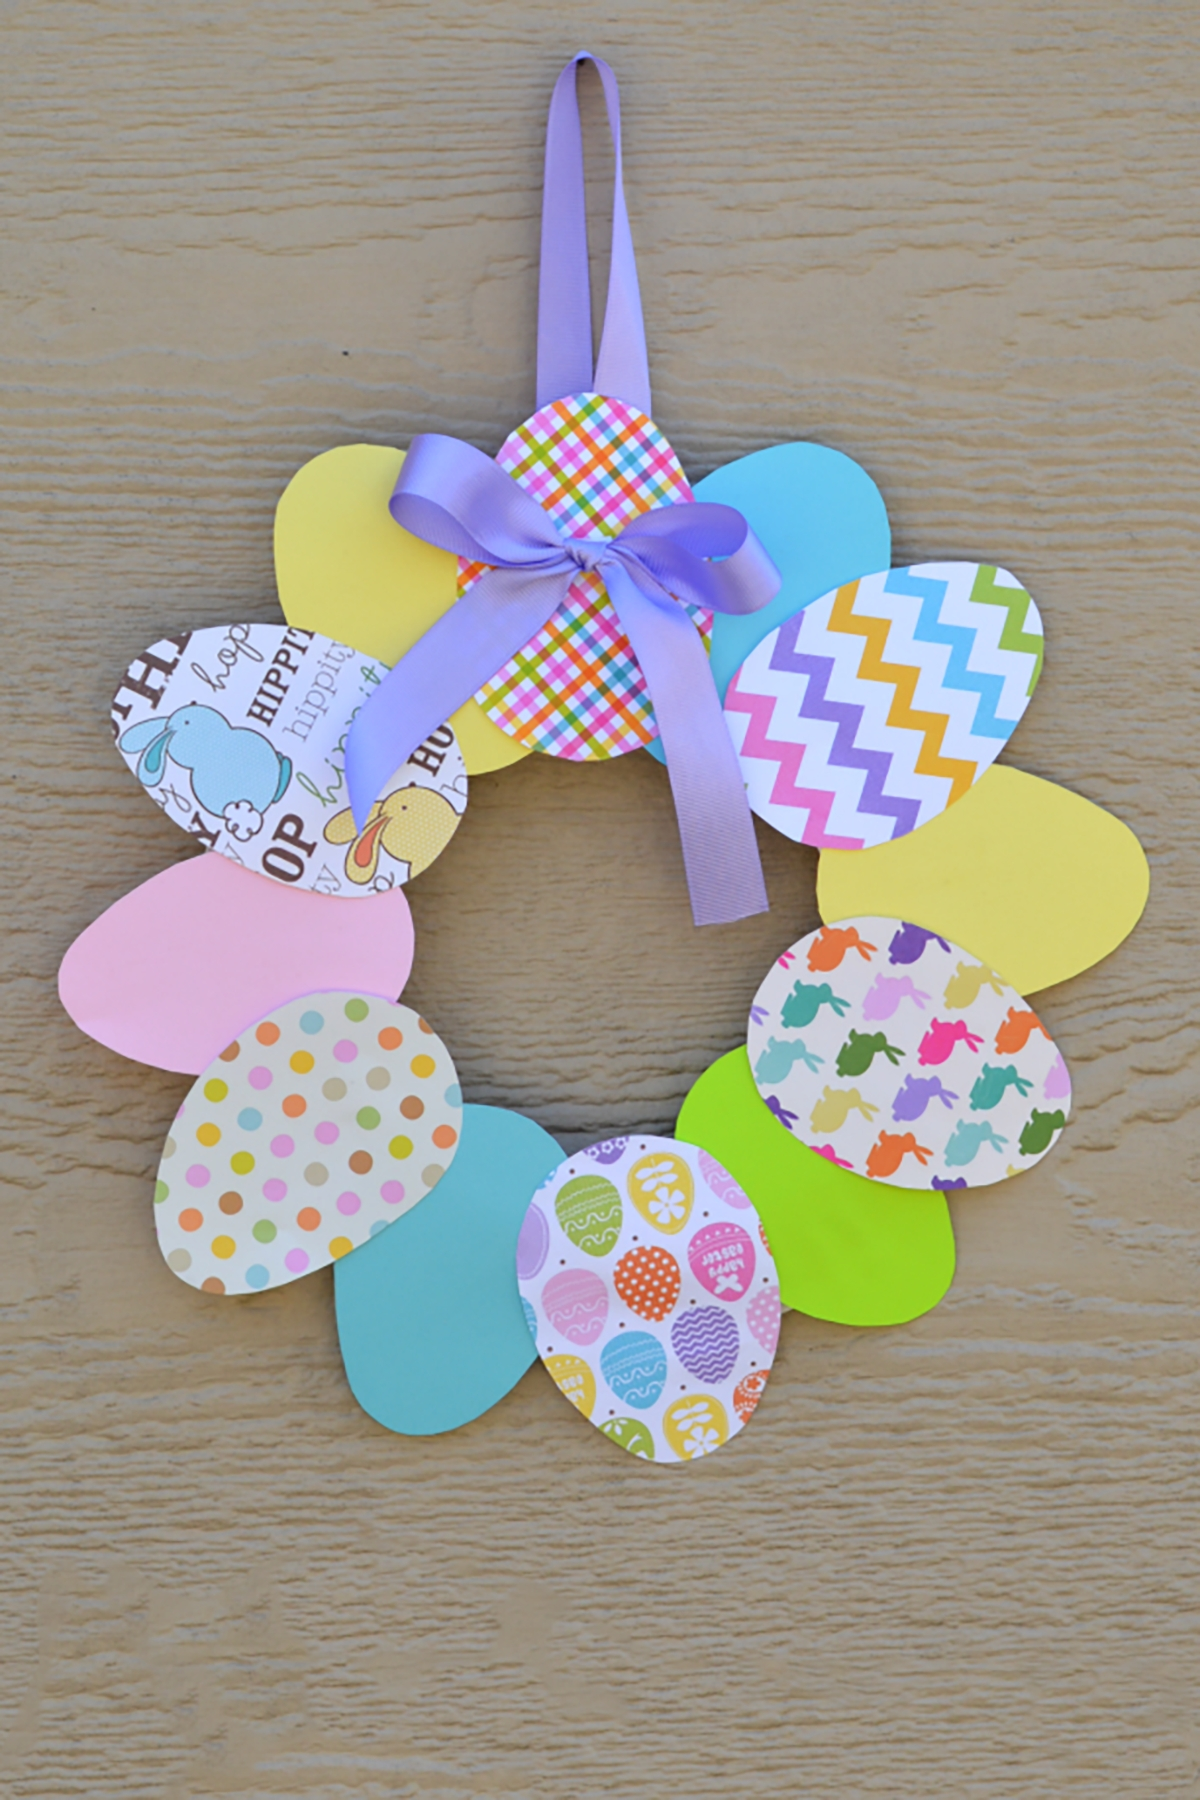 10 Unique Easter Craft Ideas For Preschoolers 38 easter crafts for kids fun diy ideas for kid friendly easter 1 2020